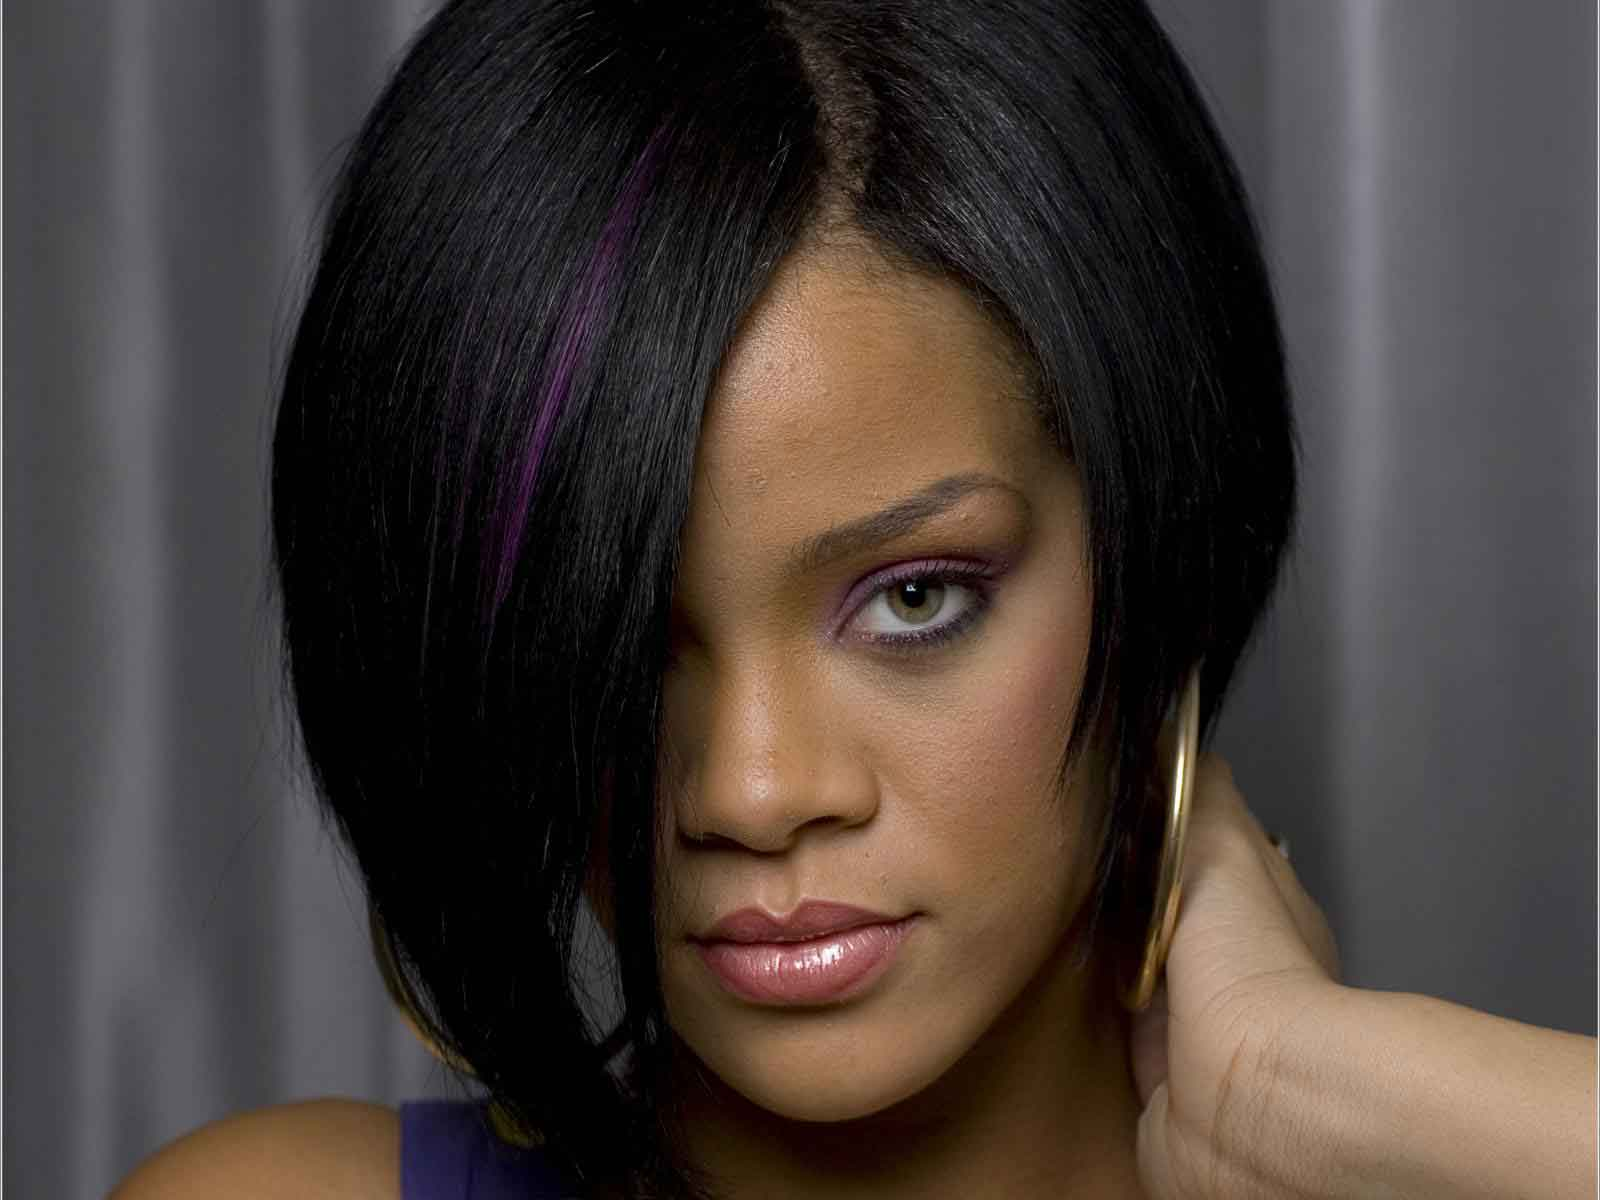 Different-Styles-Of-Bobs-30-different-types-of-hairstyles-for-girls-rihanna-bob-hairstyle-1600x1200  Short Hairstyles For Your Summer Different Styles Of Bobs 30 different types of hairstyles for girls rihanna bob hairstyle